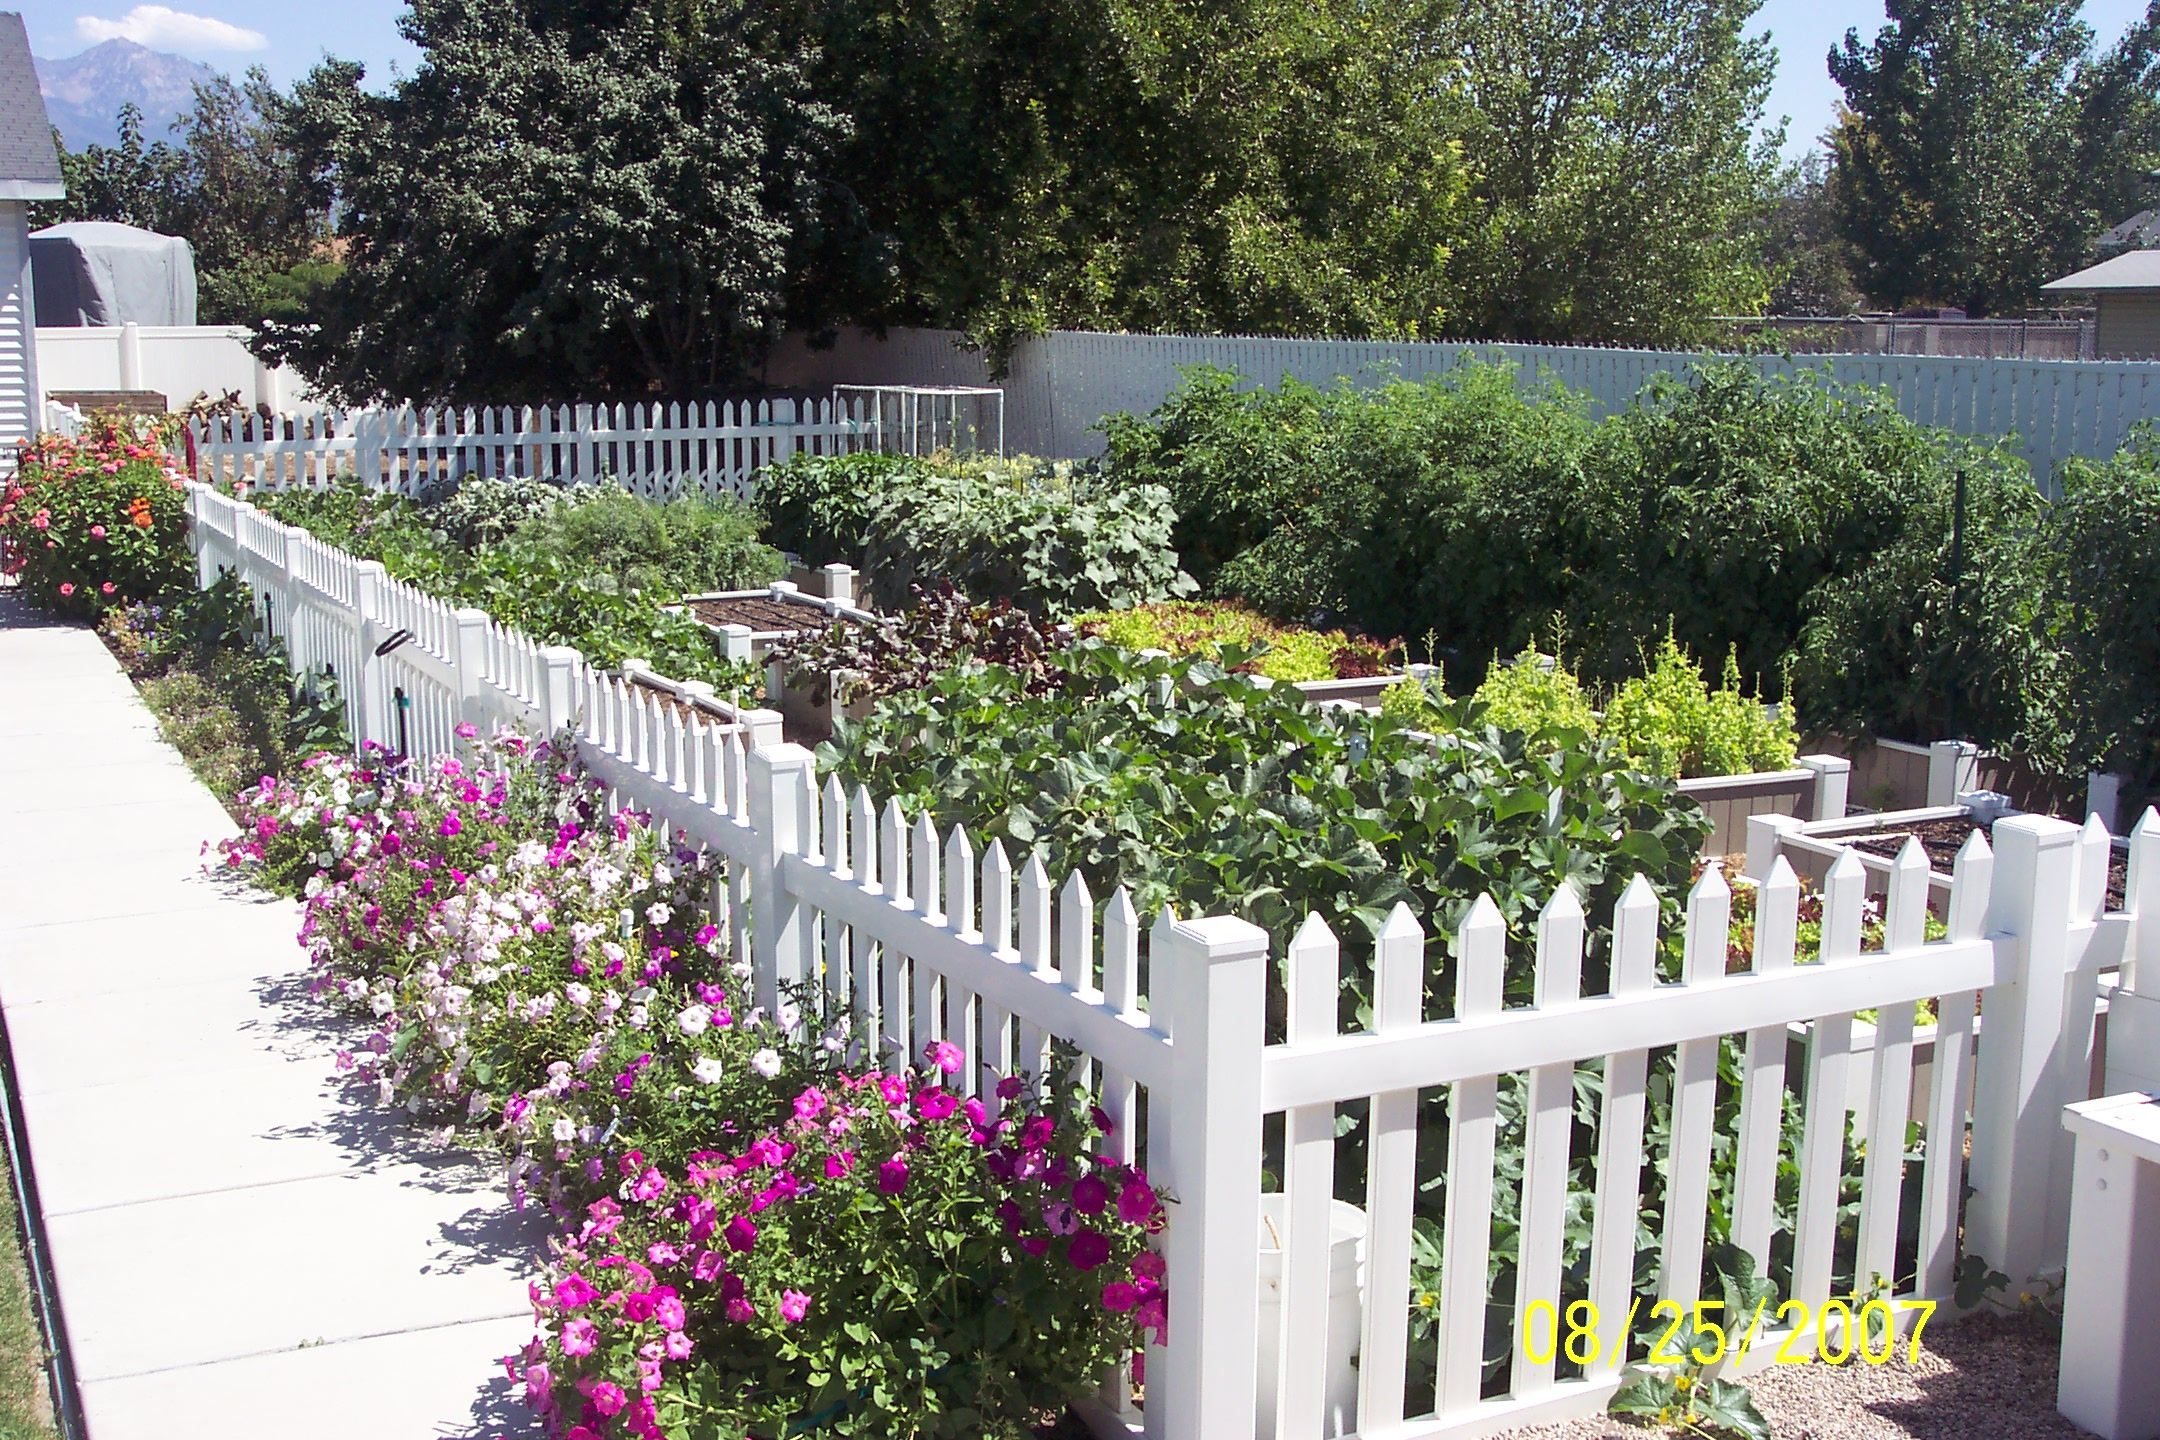 Make Your Patch A Paradise With Low Maintenance Raised Beds Raised Garden Beds Garden Beds Garden Planters